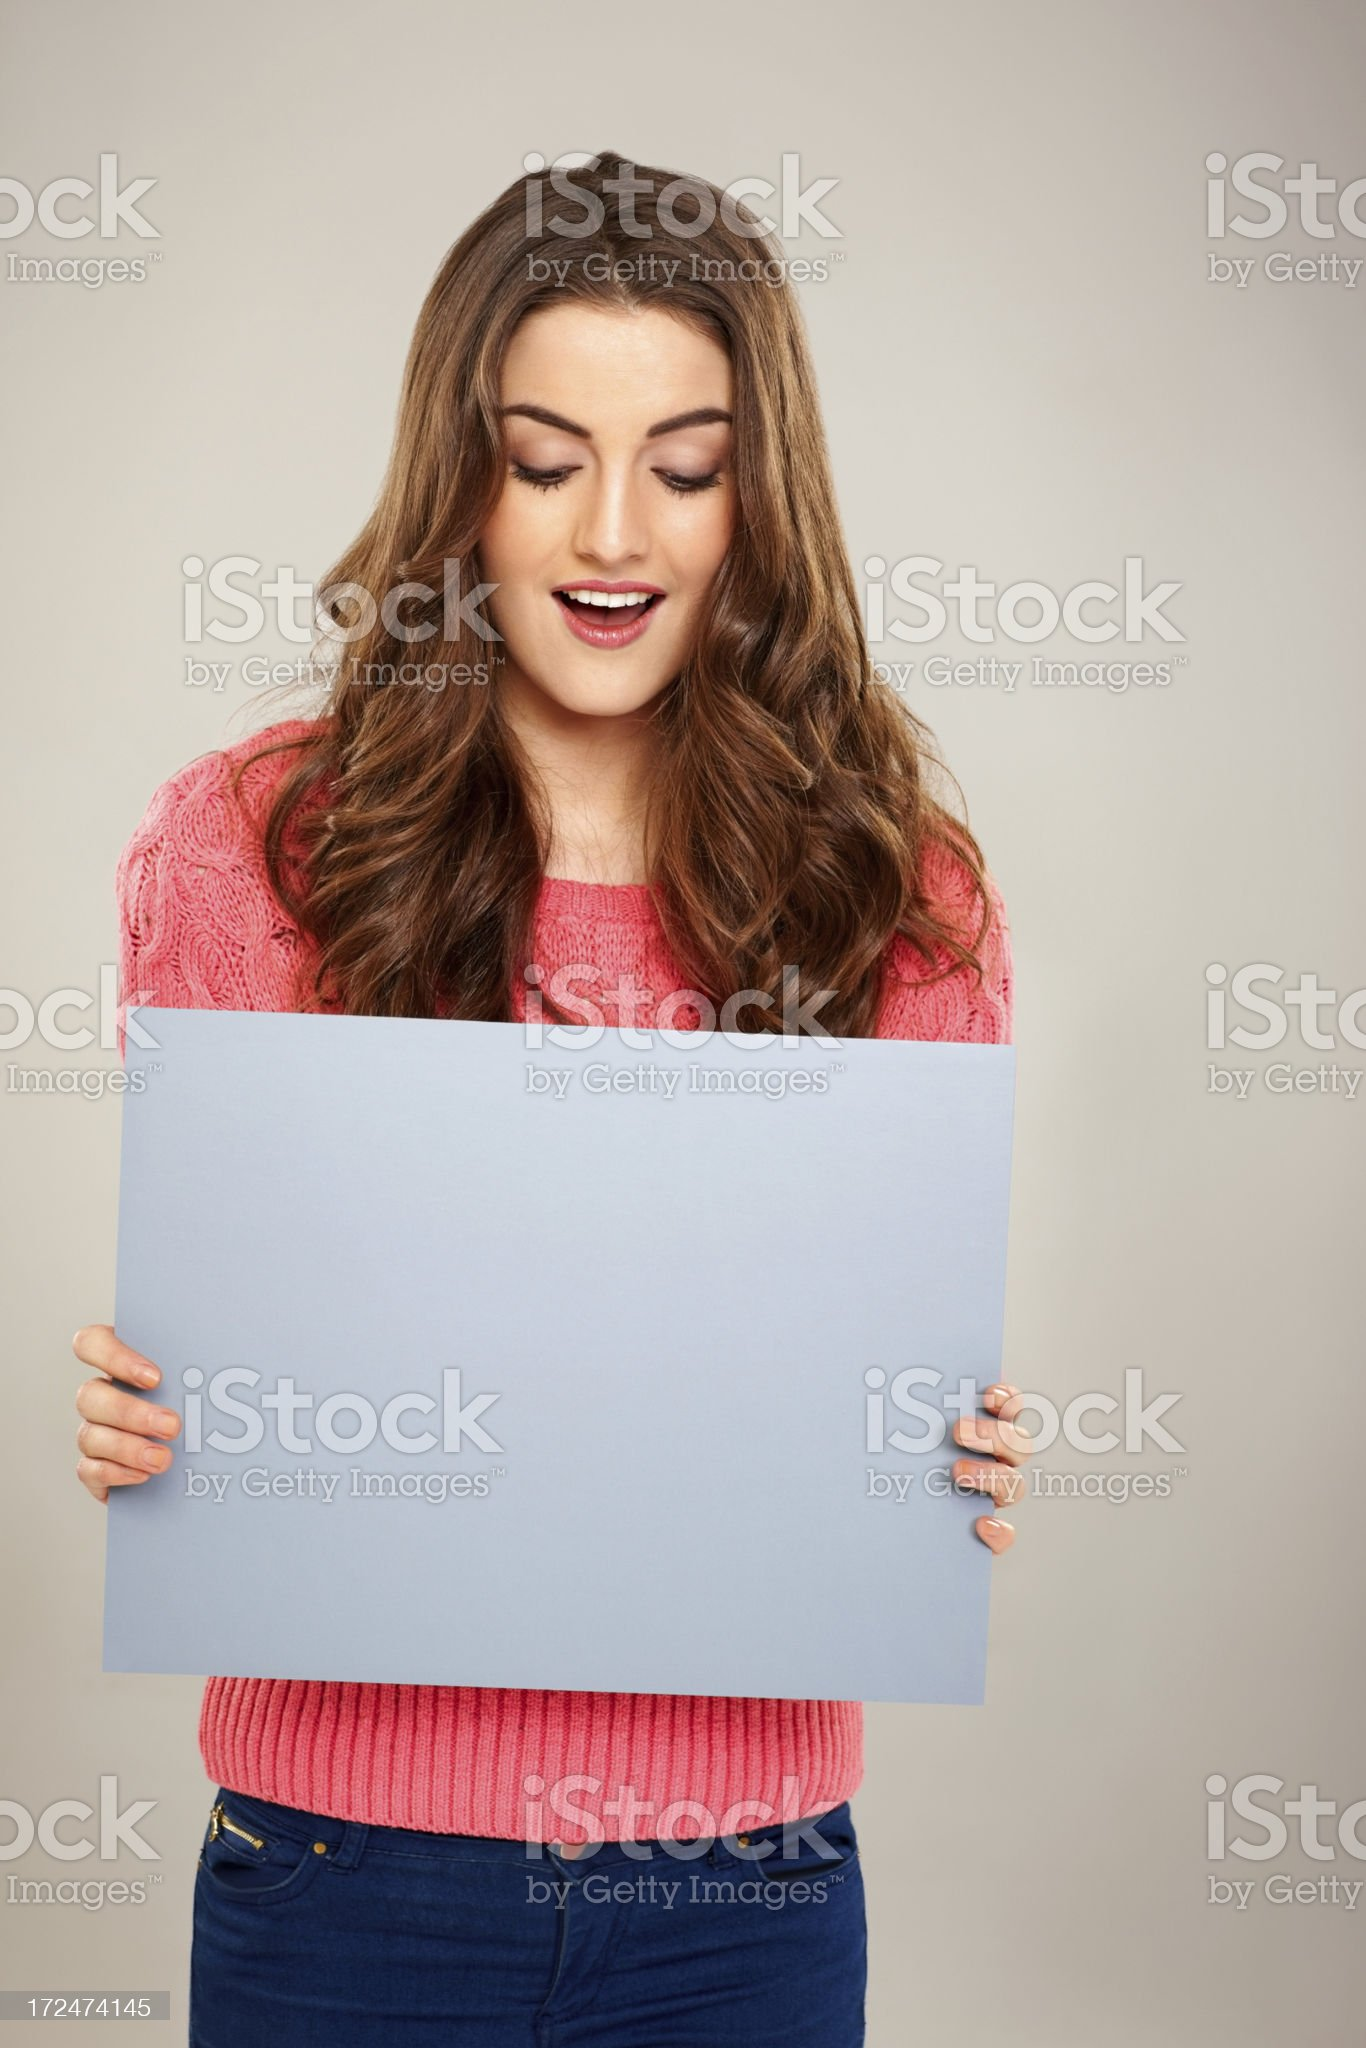 Attractive young woman holding a empty placard over grey background royalty-free stock photo